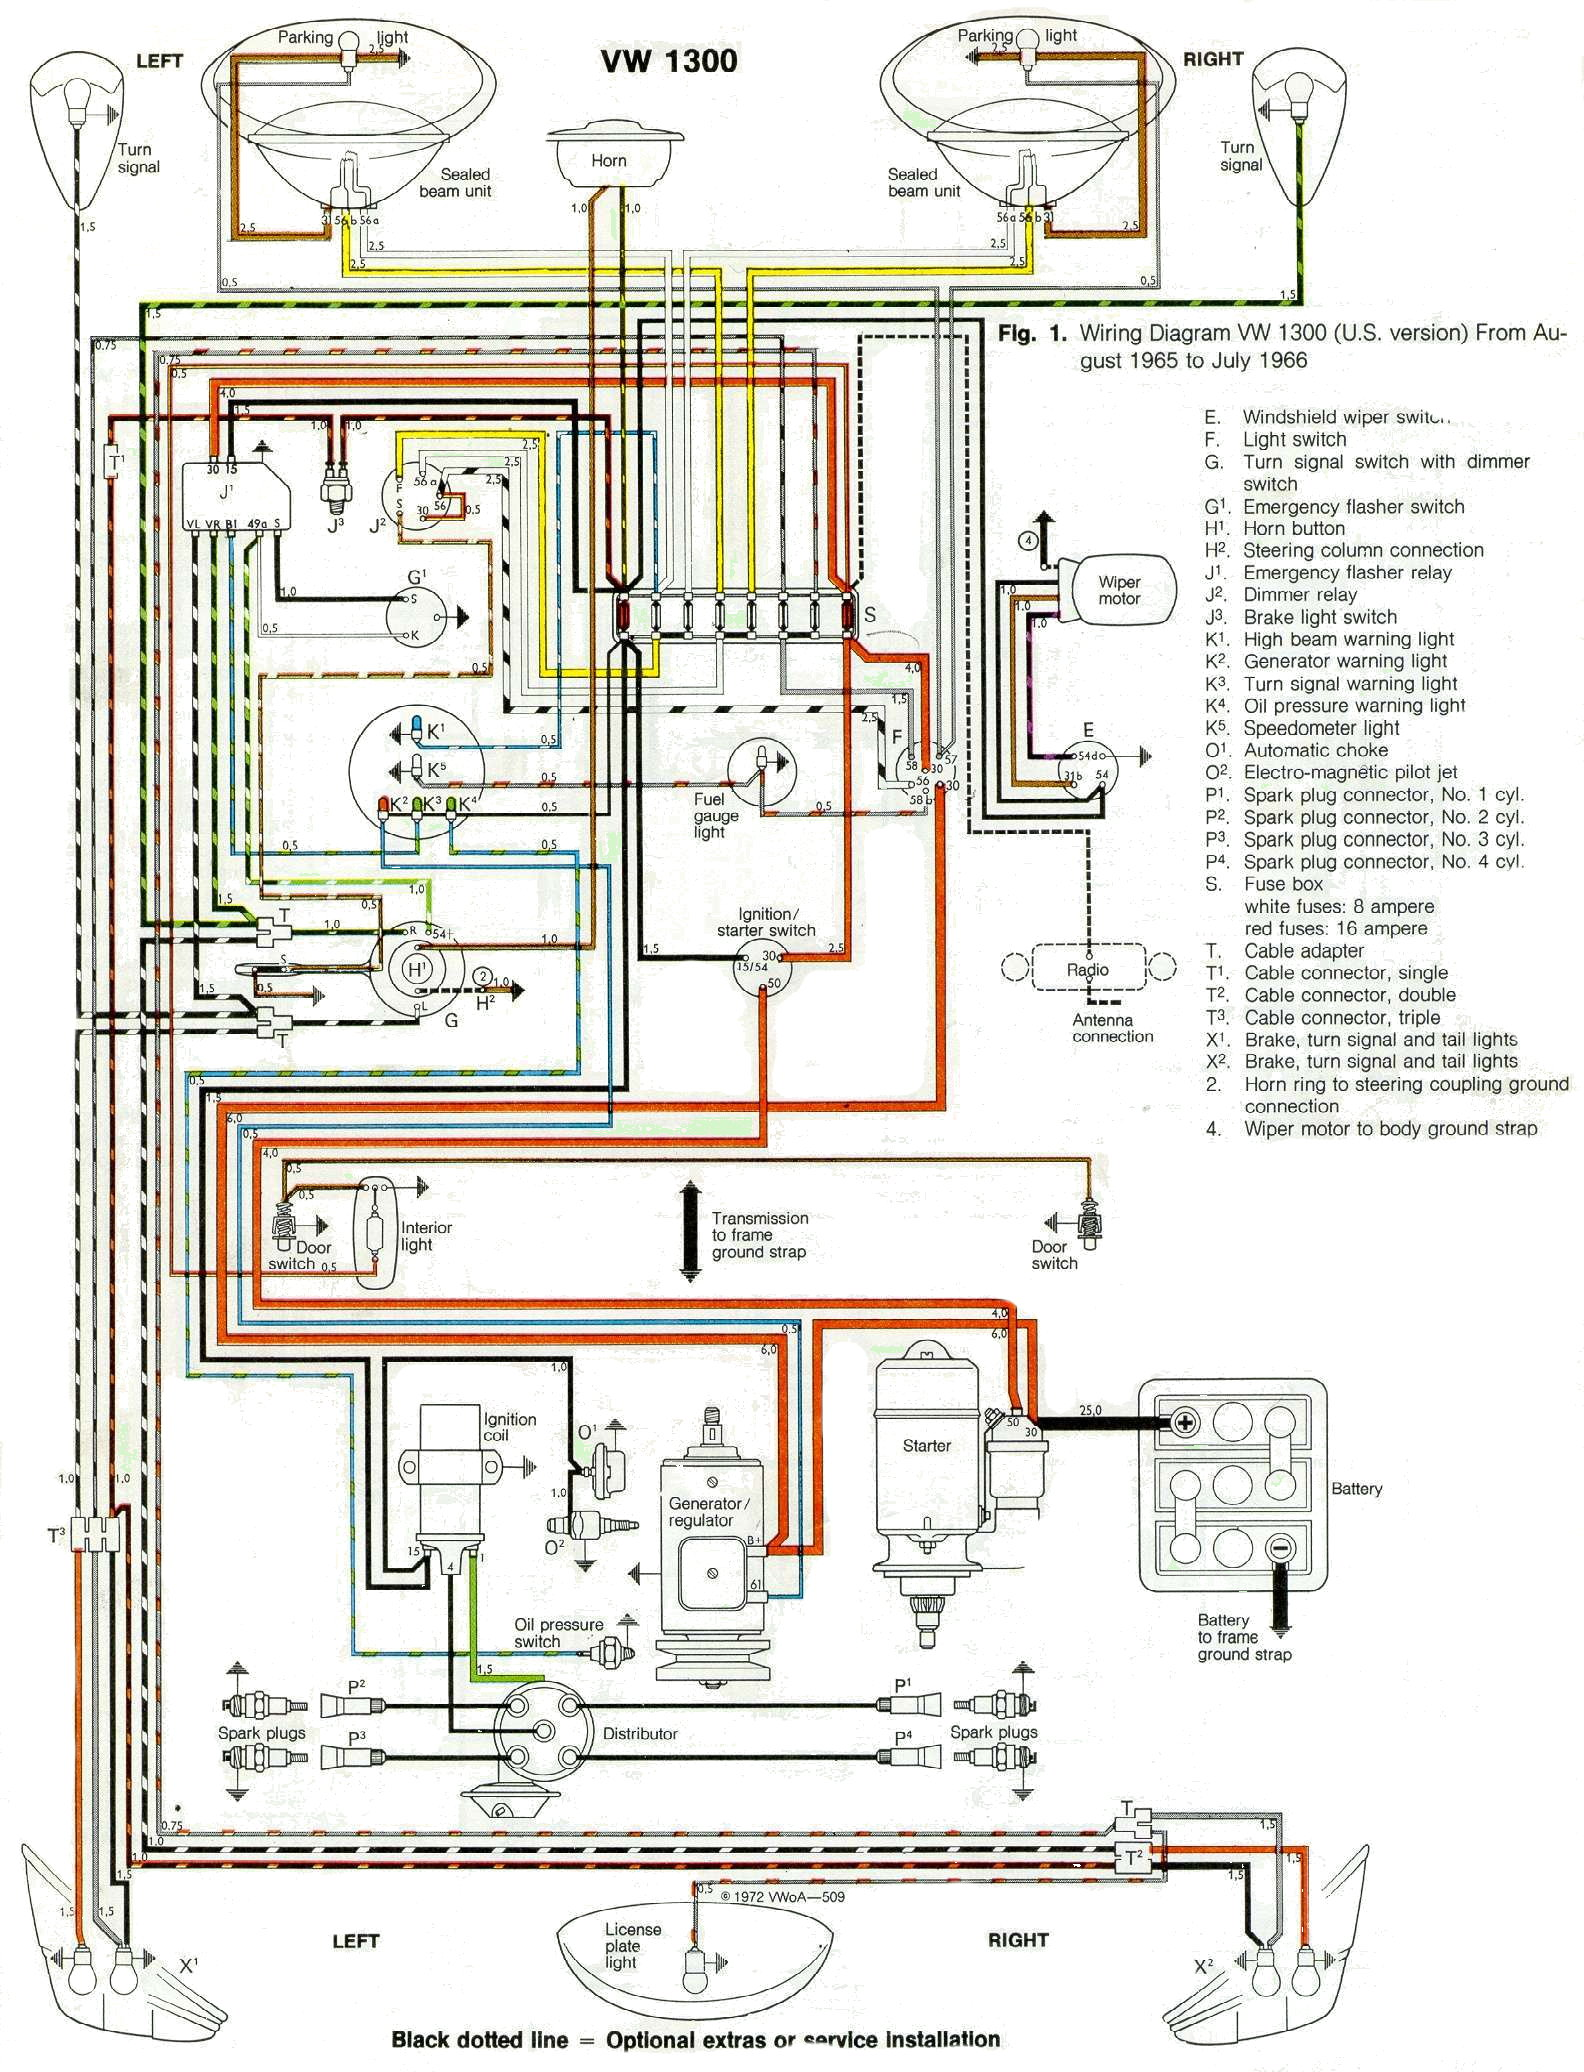 1966 Wiring vw wiring harness diagram cj7 wiring harness diagram \u2022 wiring DIY Lingerie Harness at virtualis.co